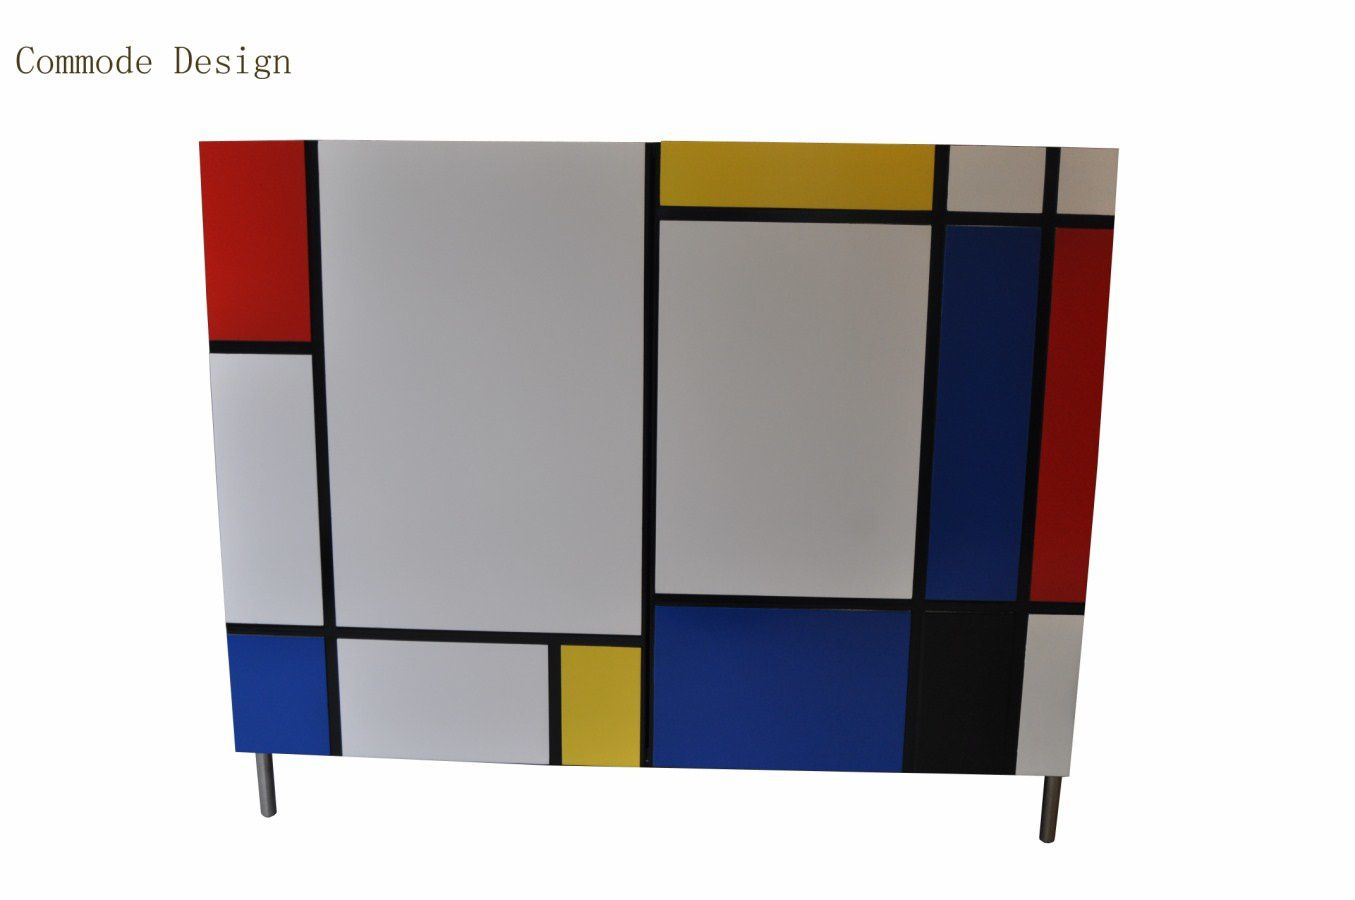 Le corbusier mondrian gustavodesign for Le corbusier meuble